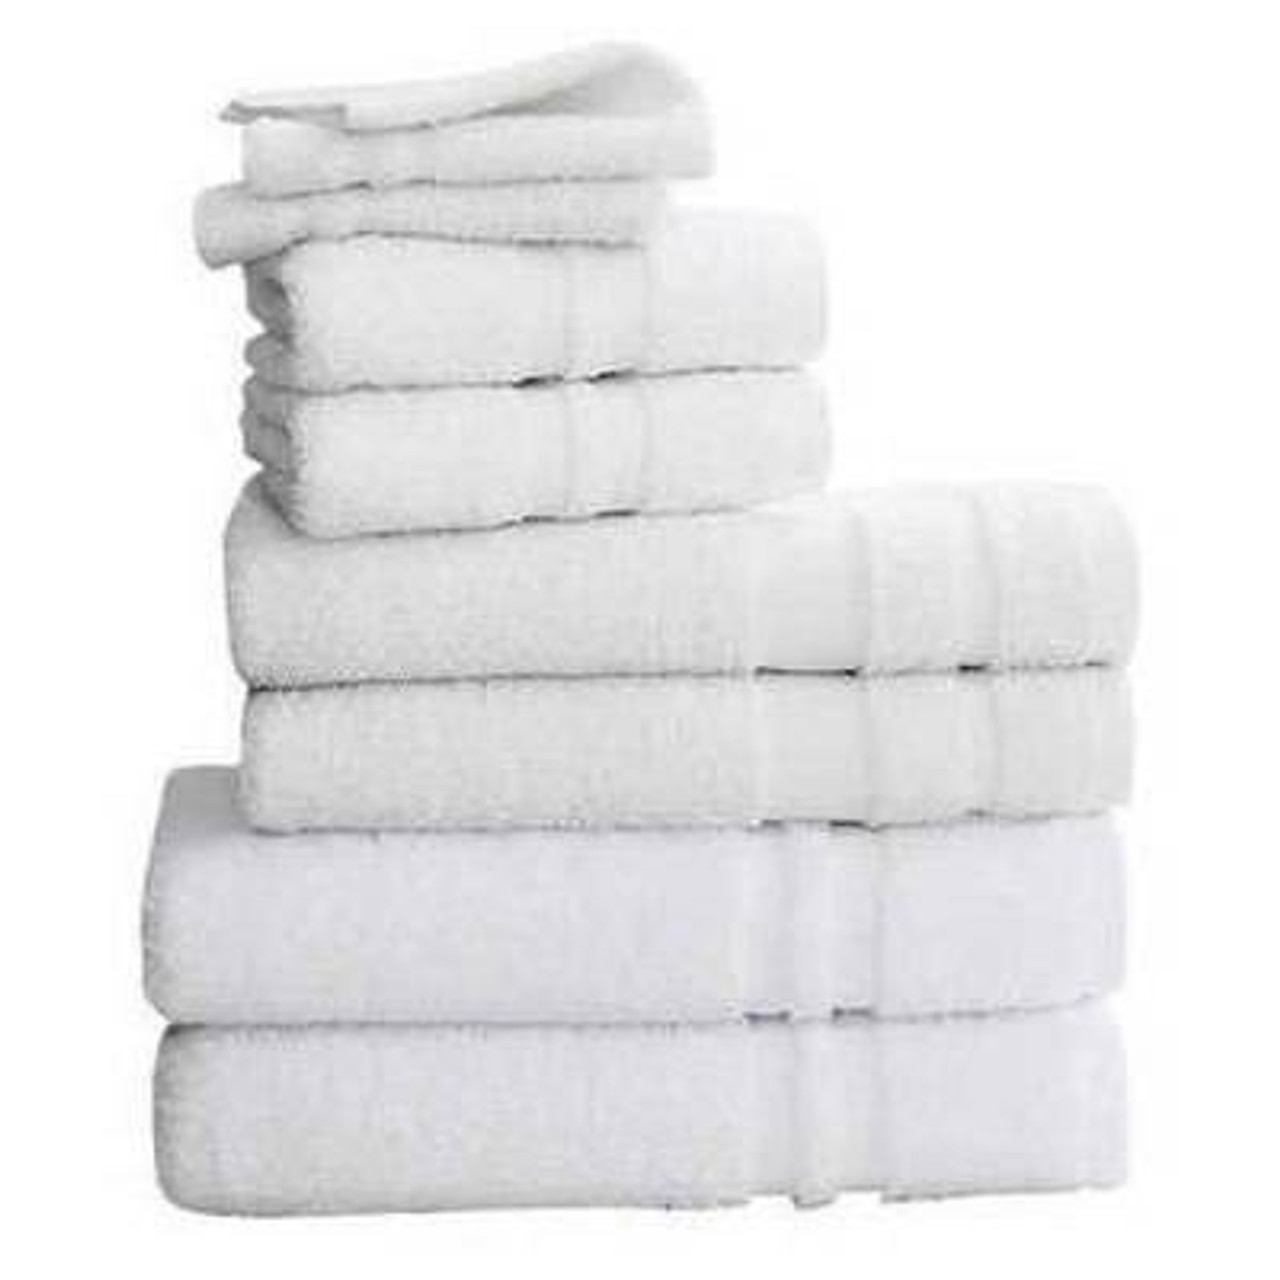 WestPoint/Martex MARTEX DOUBLE CAM BORDER BATH TOWELS or 24X54 or 12.5LBS/DZ or WHITE or PACK OF 5